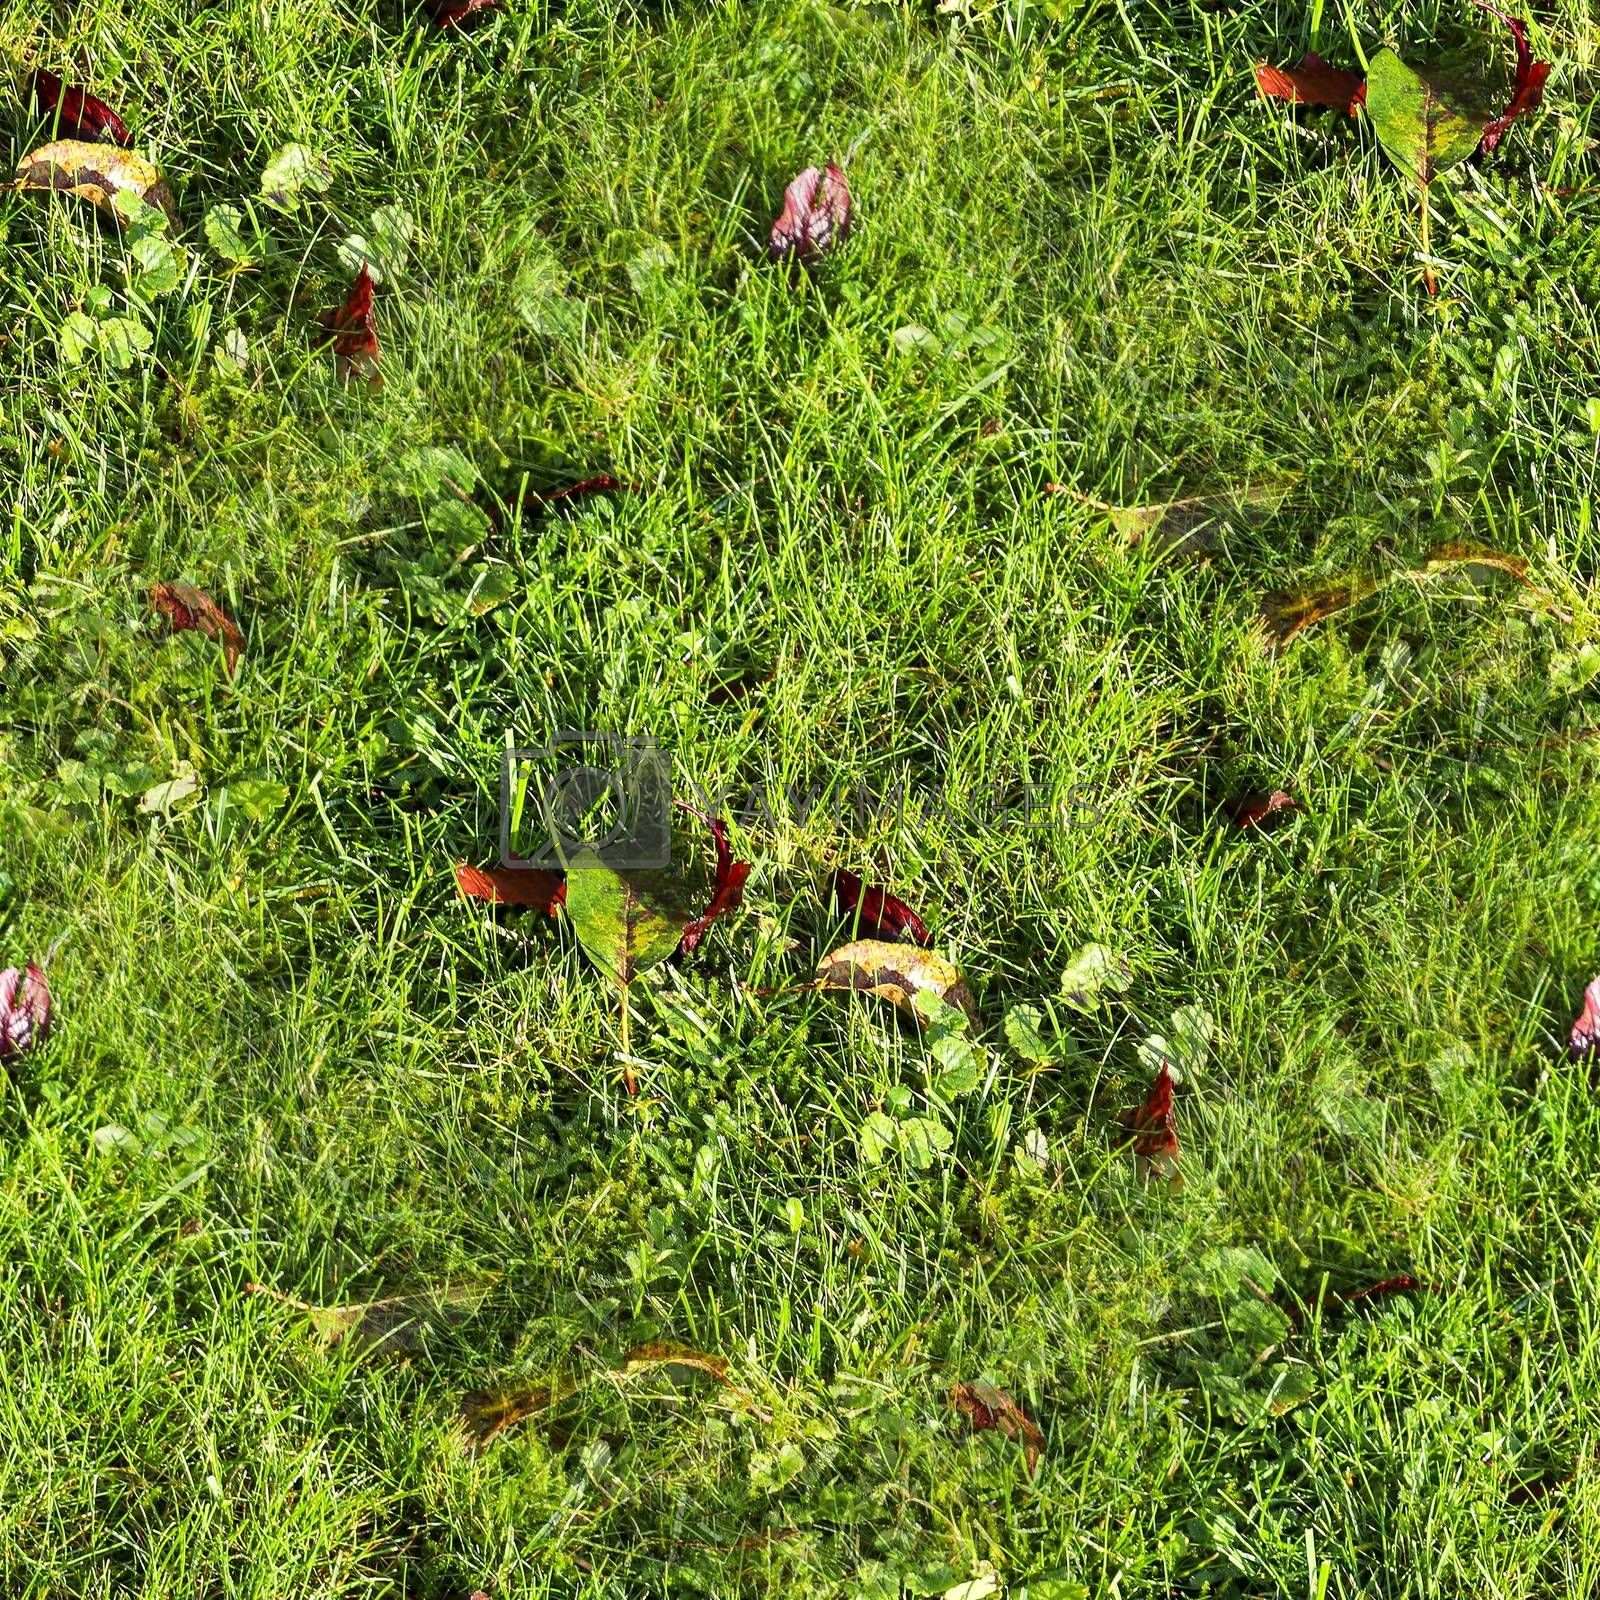 Photo realistic seamless grass texture in high resolution with more than 6 megapixel